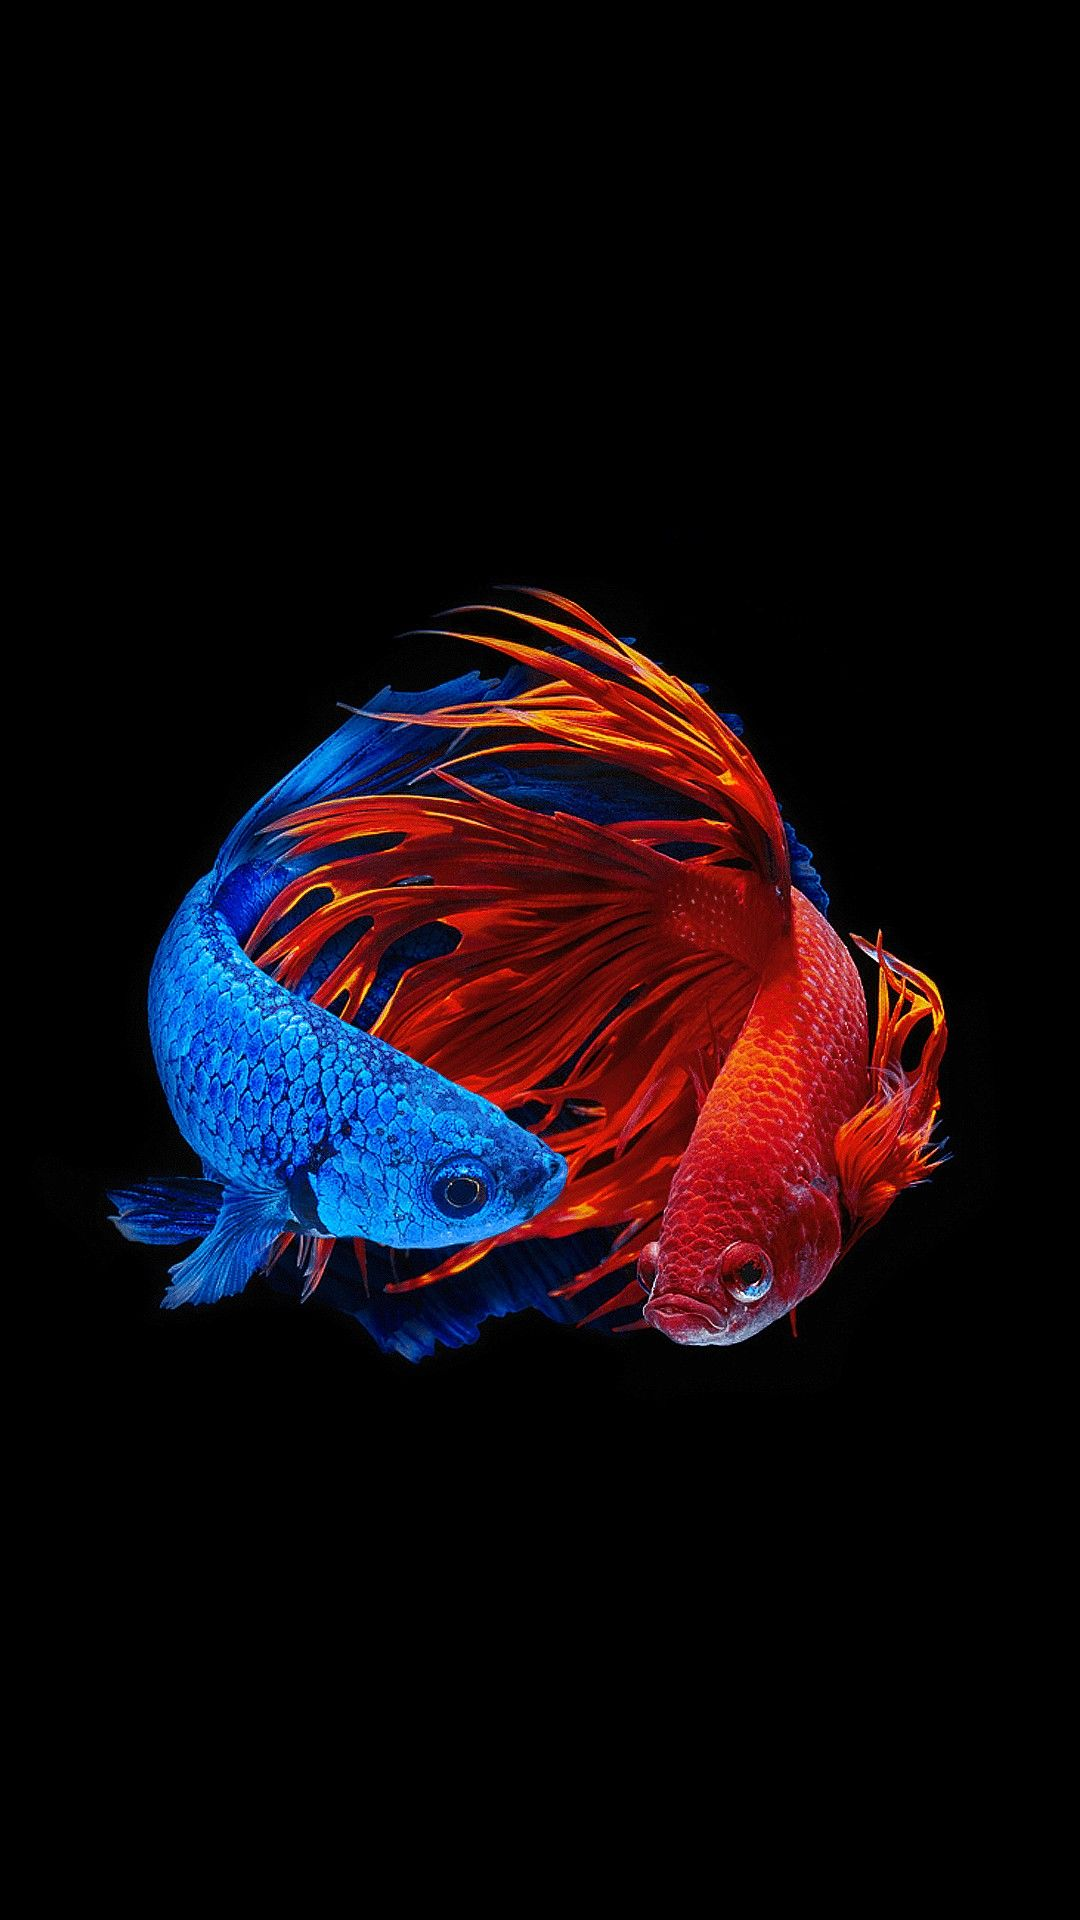 Pin by zryan on zryan Fish wallpaper iphone, Fish